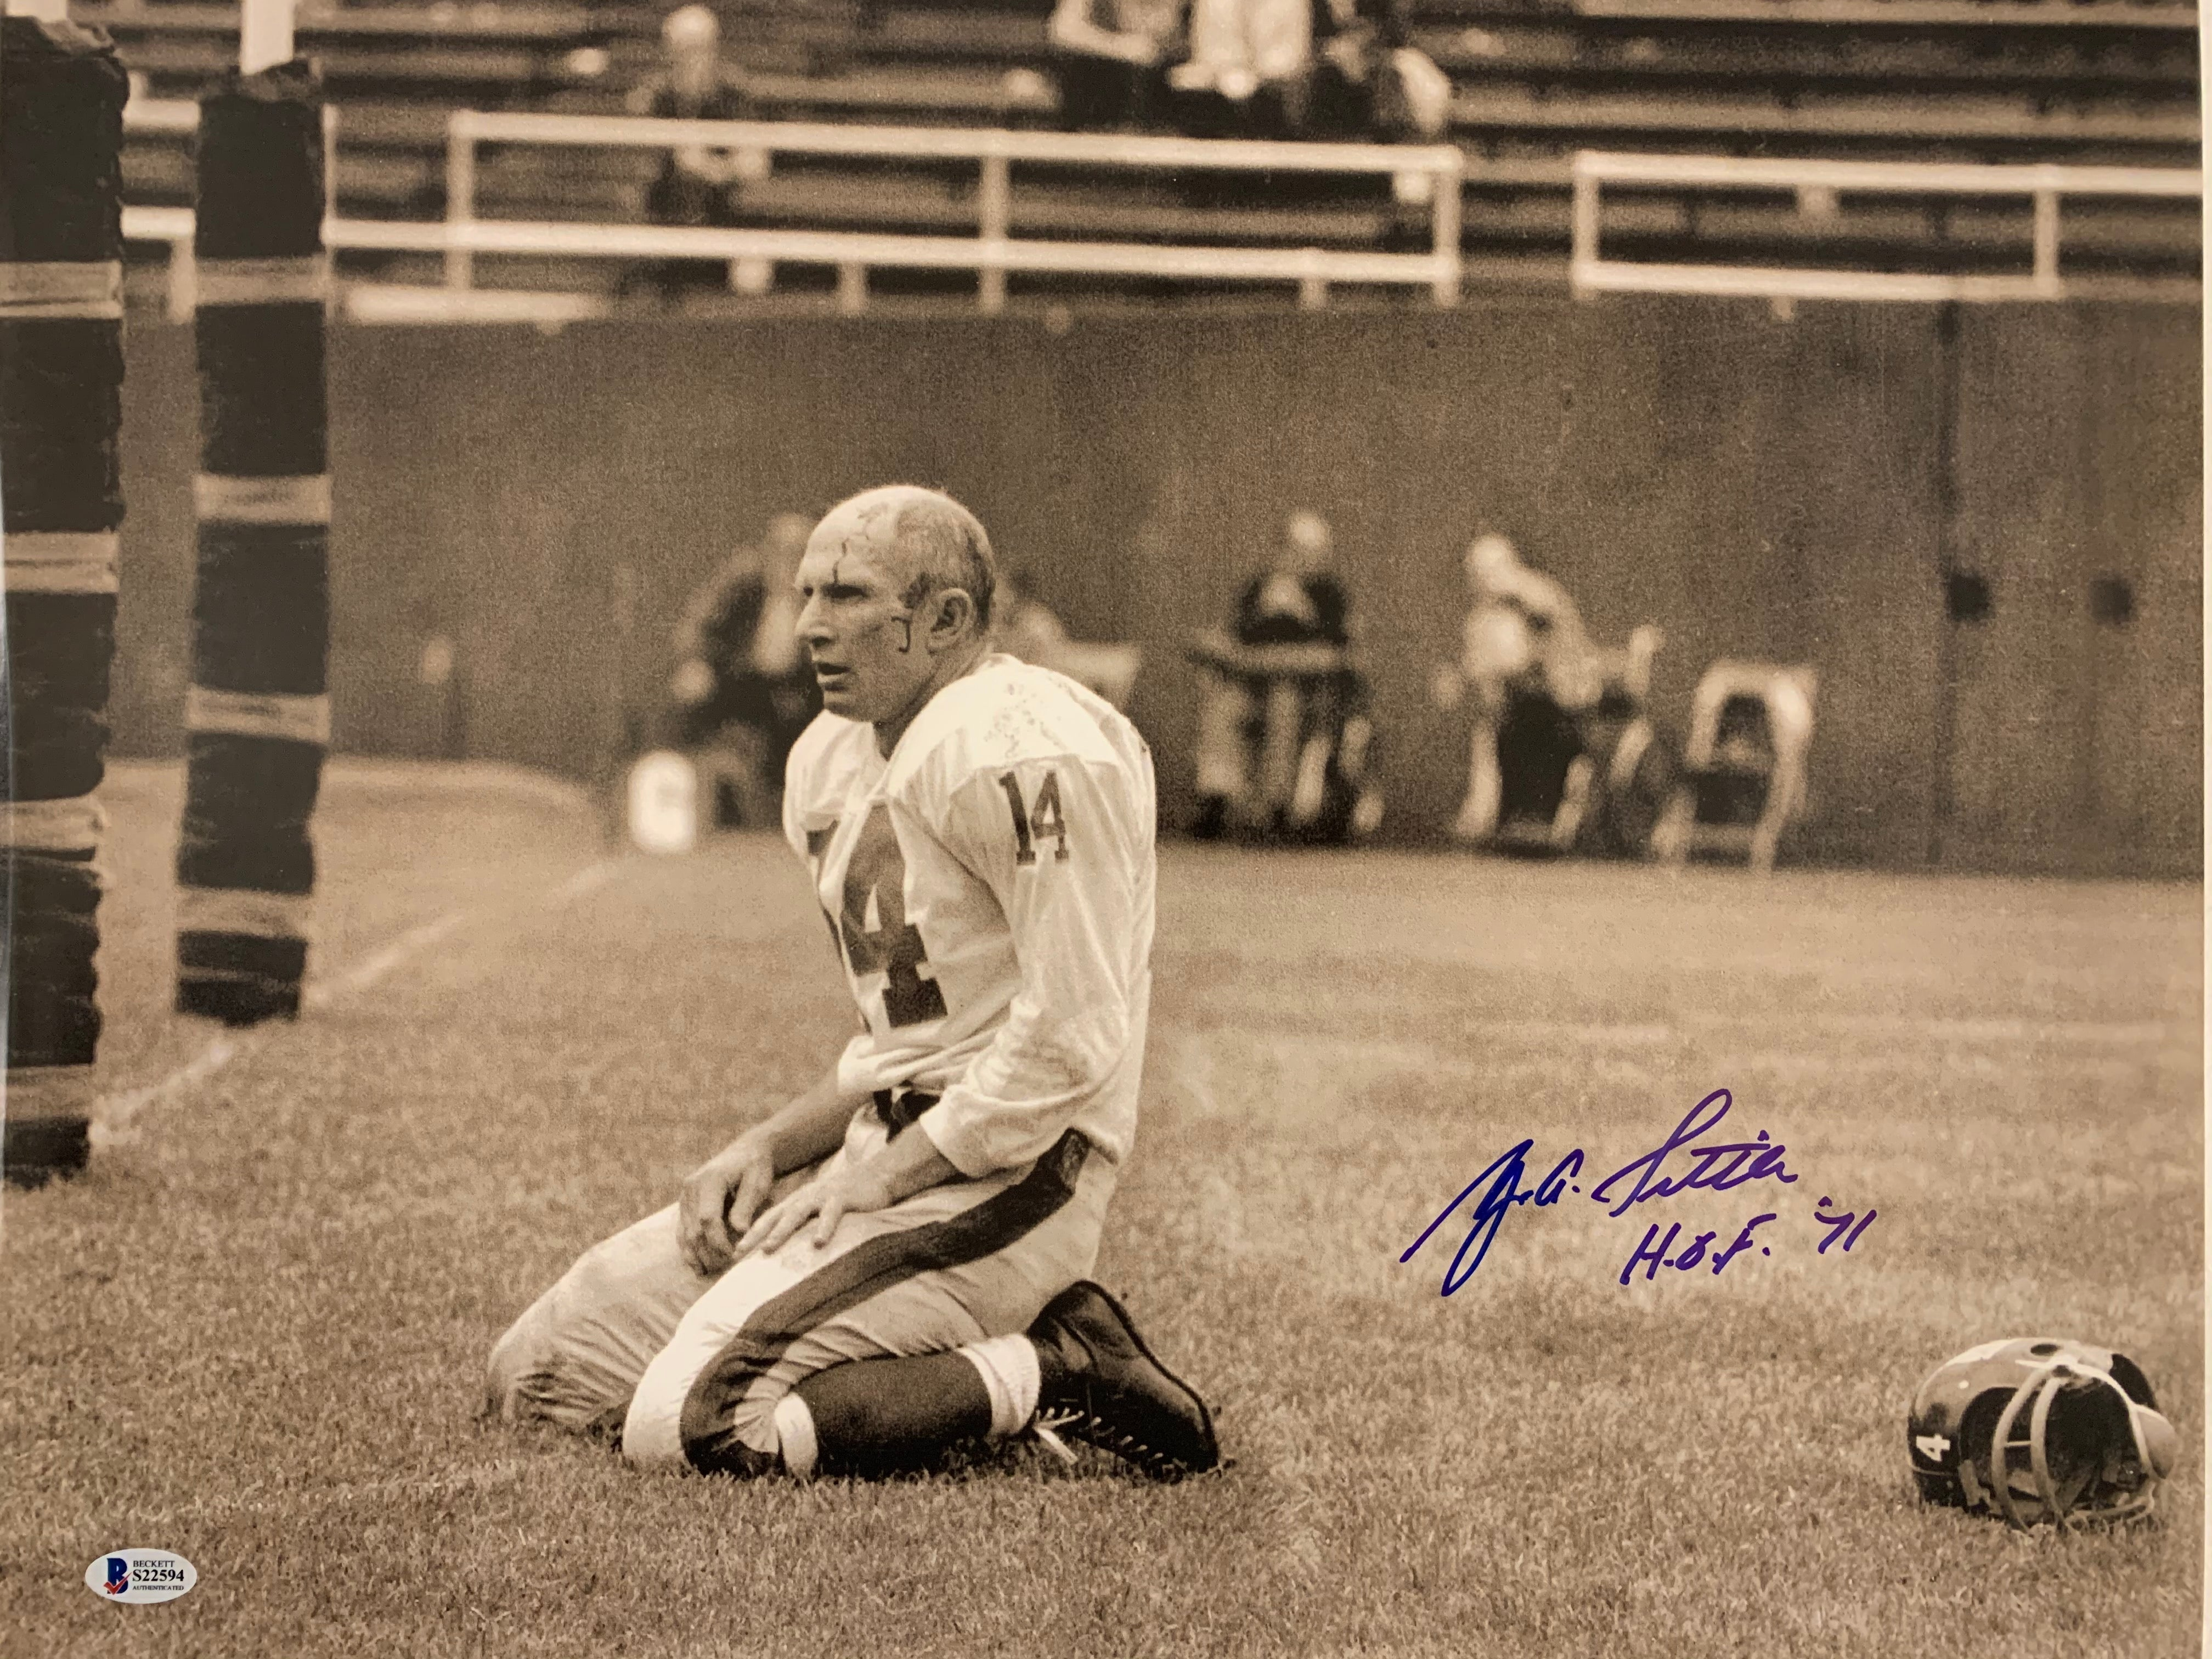 Y.A. Tittle 16x20 famous Anguish photo Inscribed HOF 71 - Latitude Sports Marketing